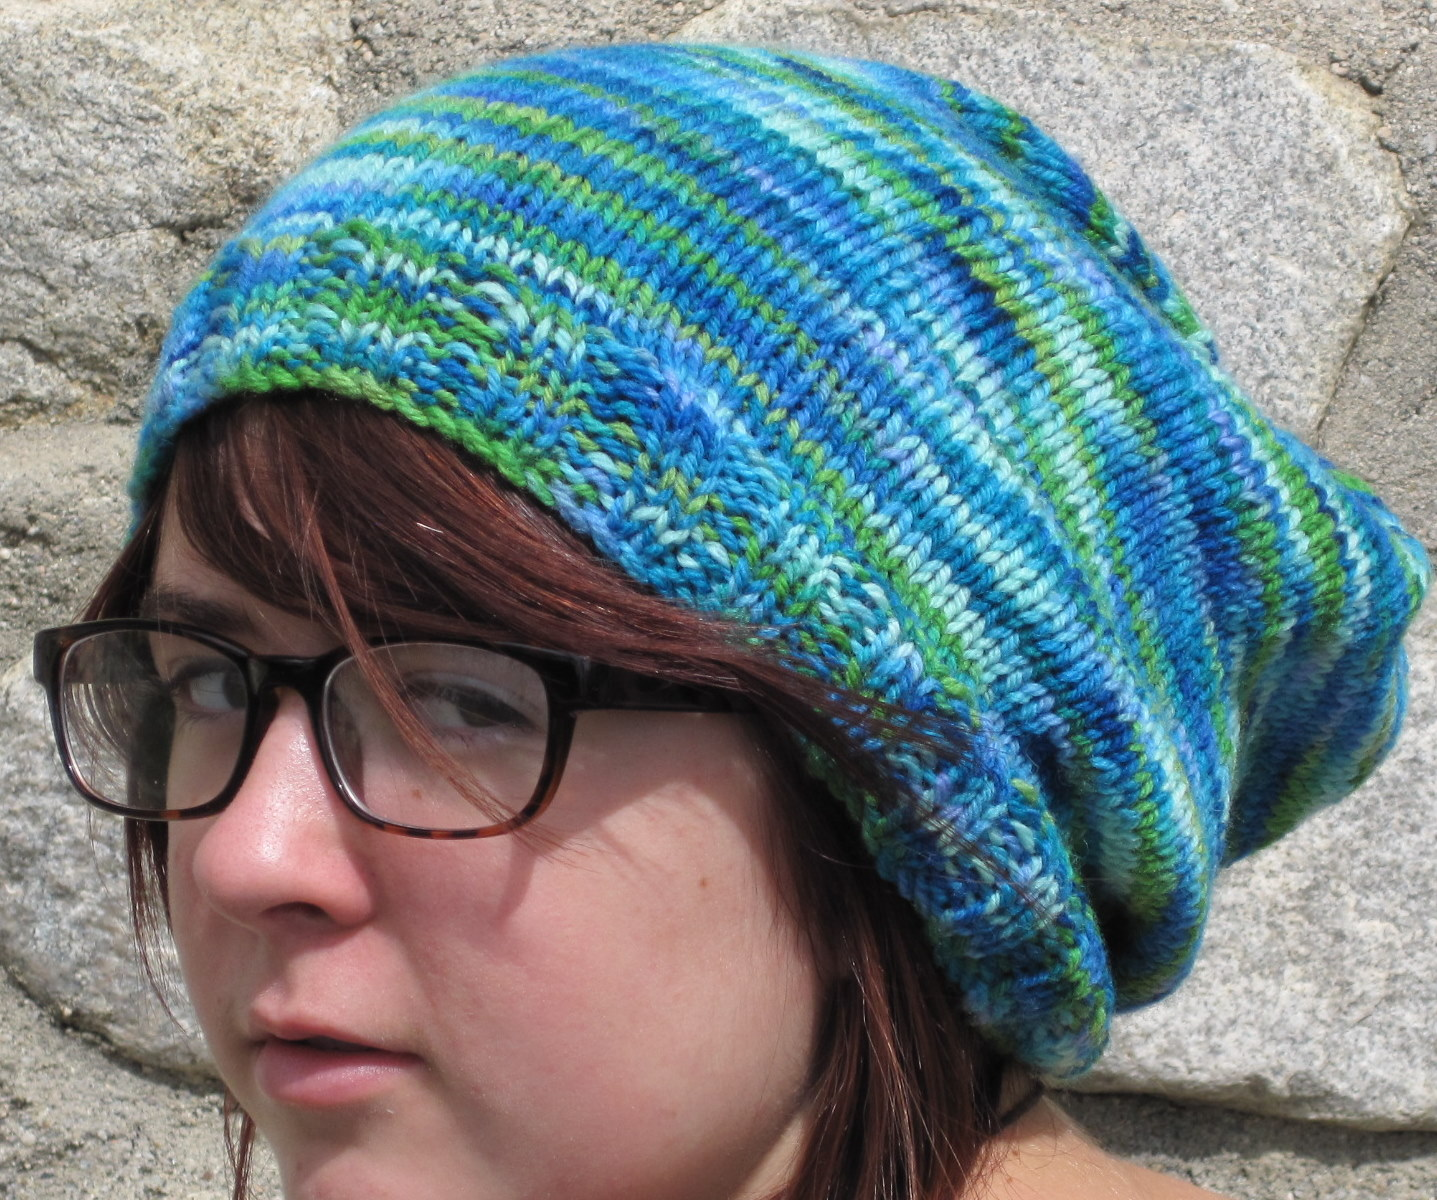 Crochet Or Knit : Crafting With Style: My Favorite Free Hat Patterns to Knit or Crochet